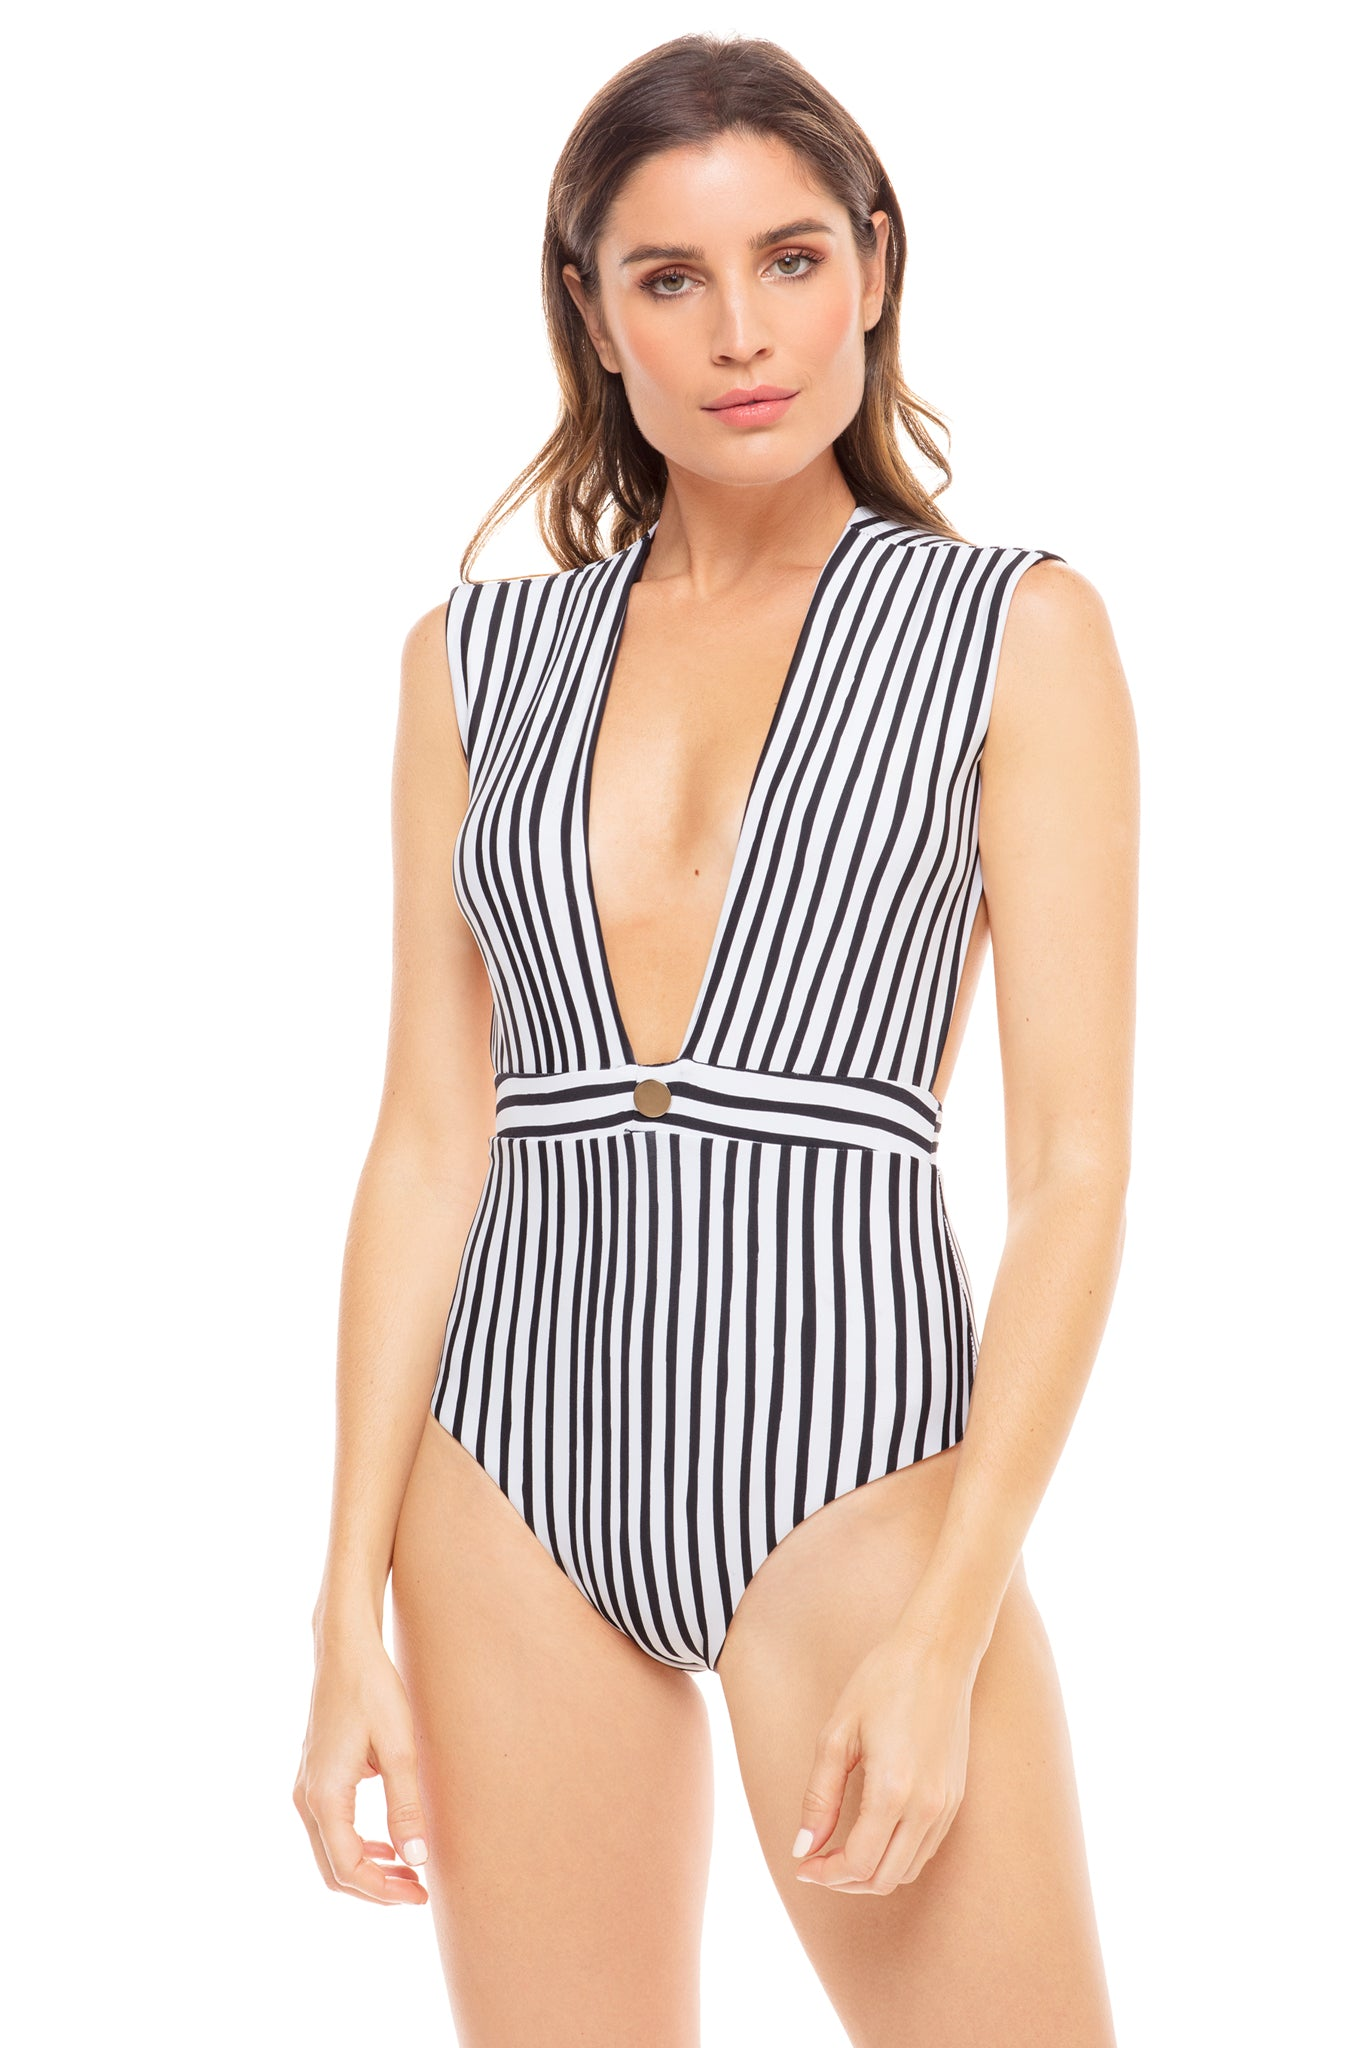 Emery cap sleeve one piece in black and white stripe. Model shot front